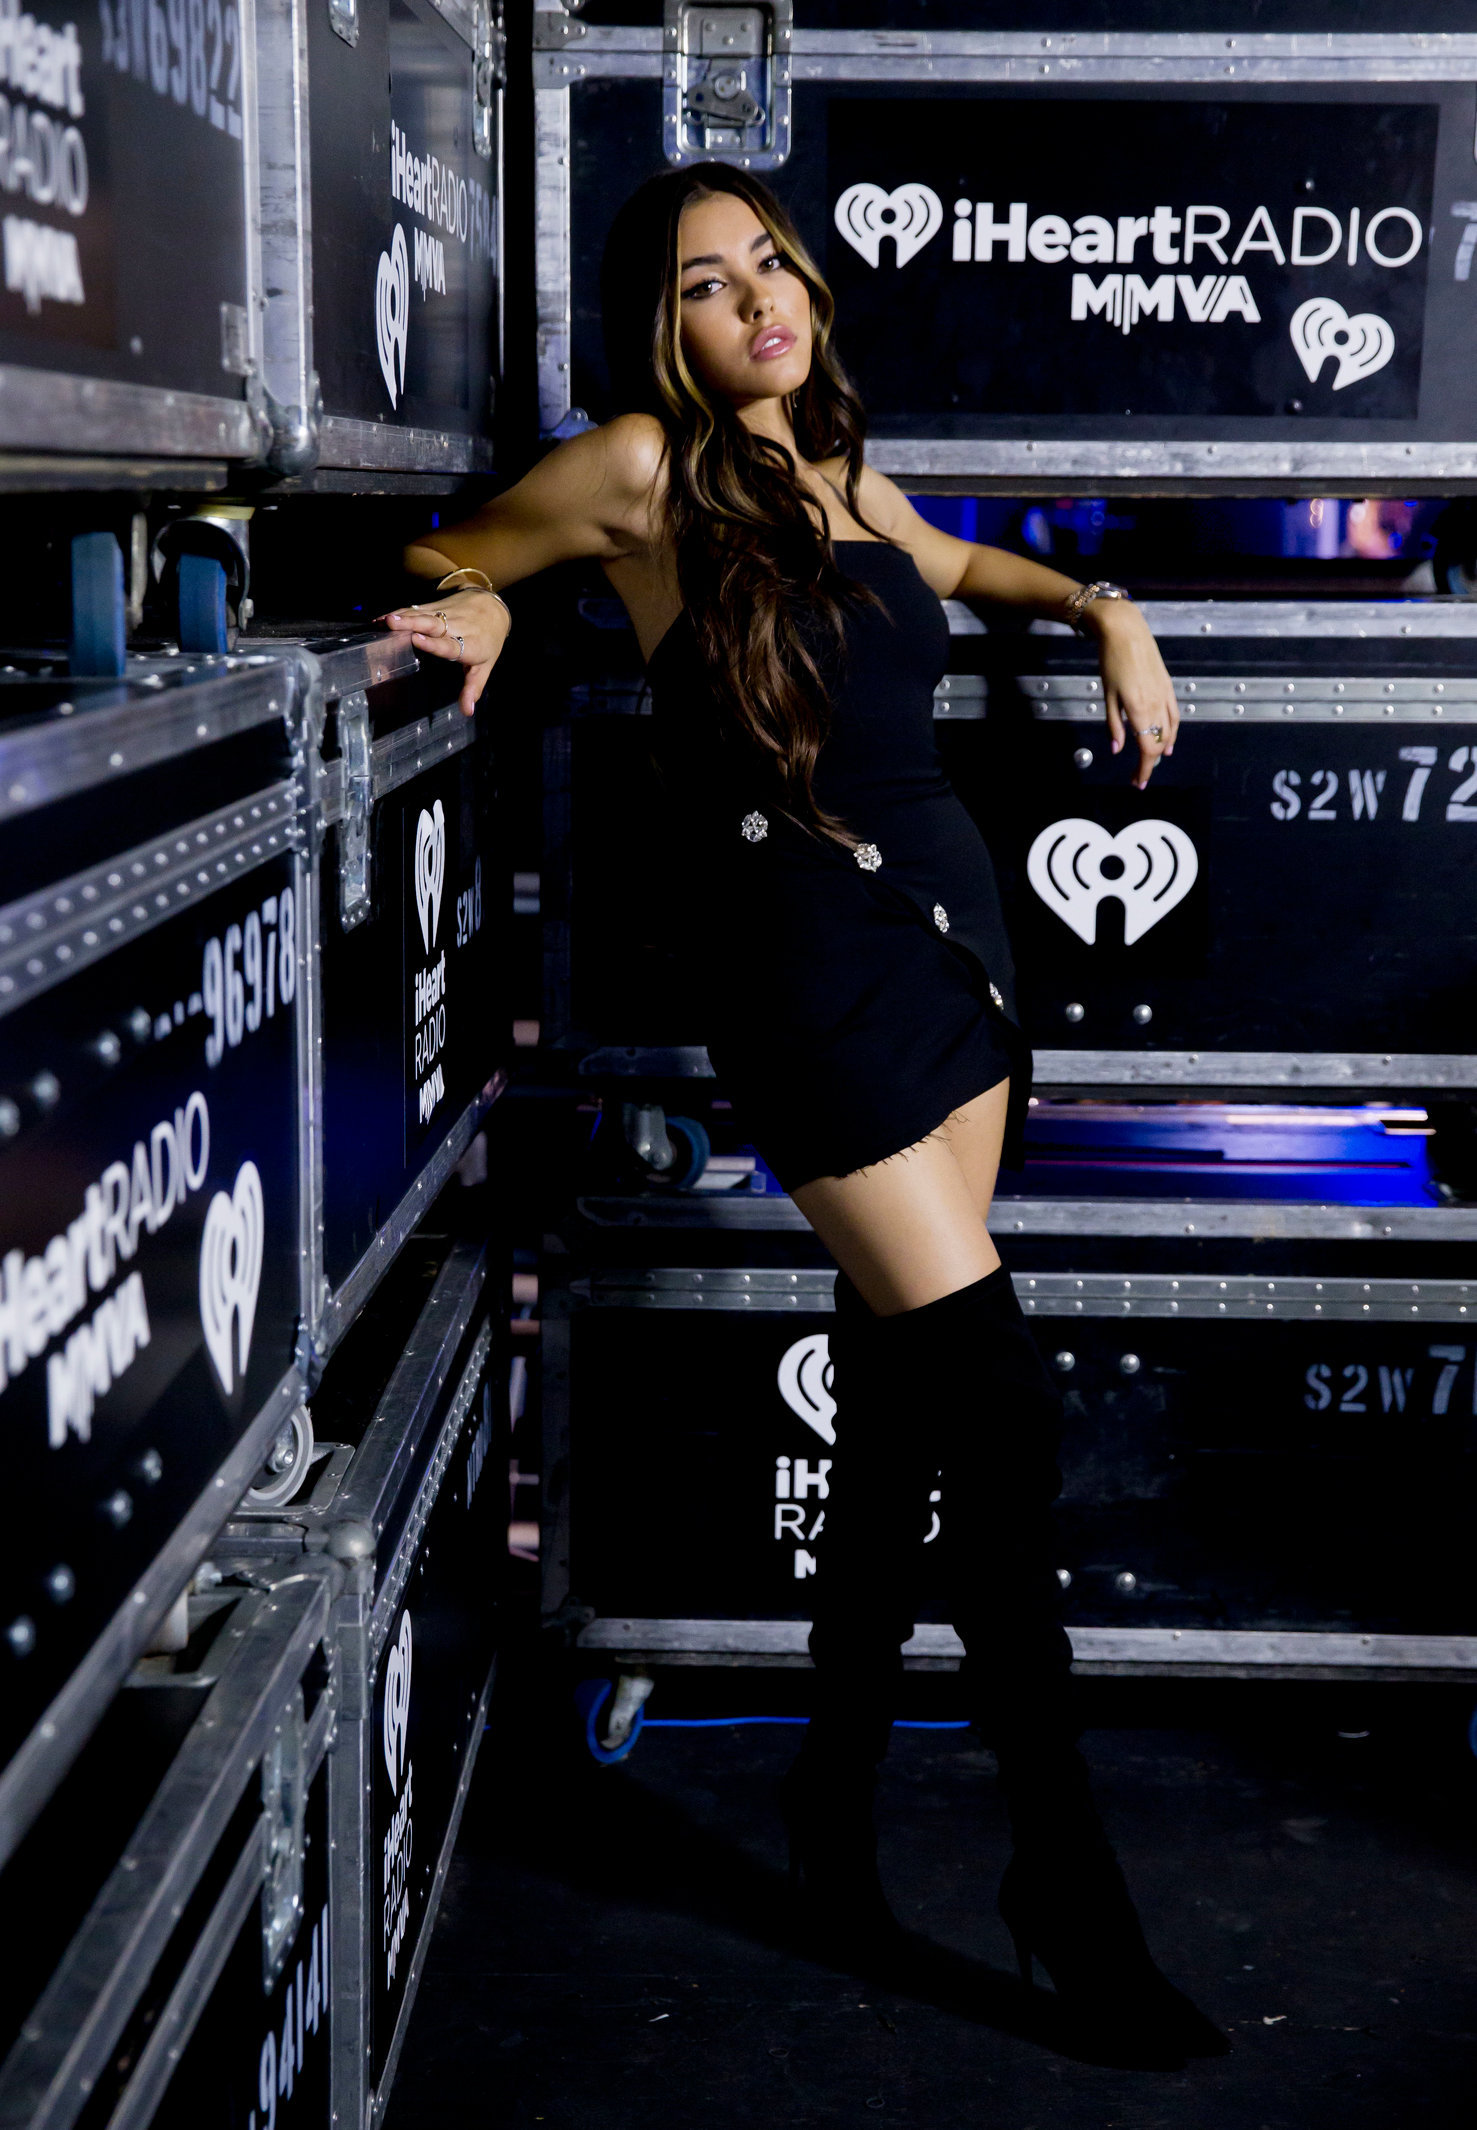 MMVAs_Behind_The_Scenes_063.JPG